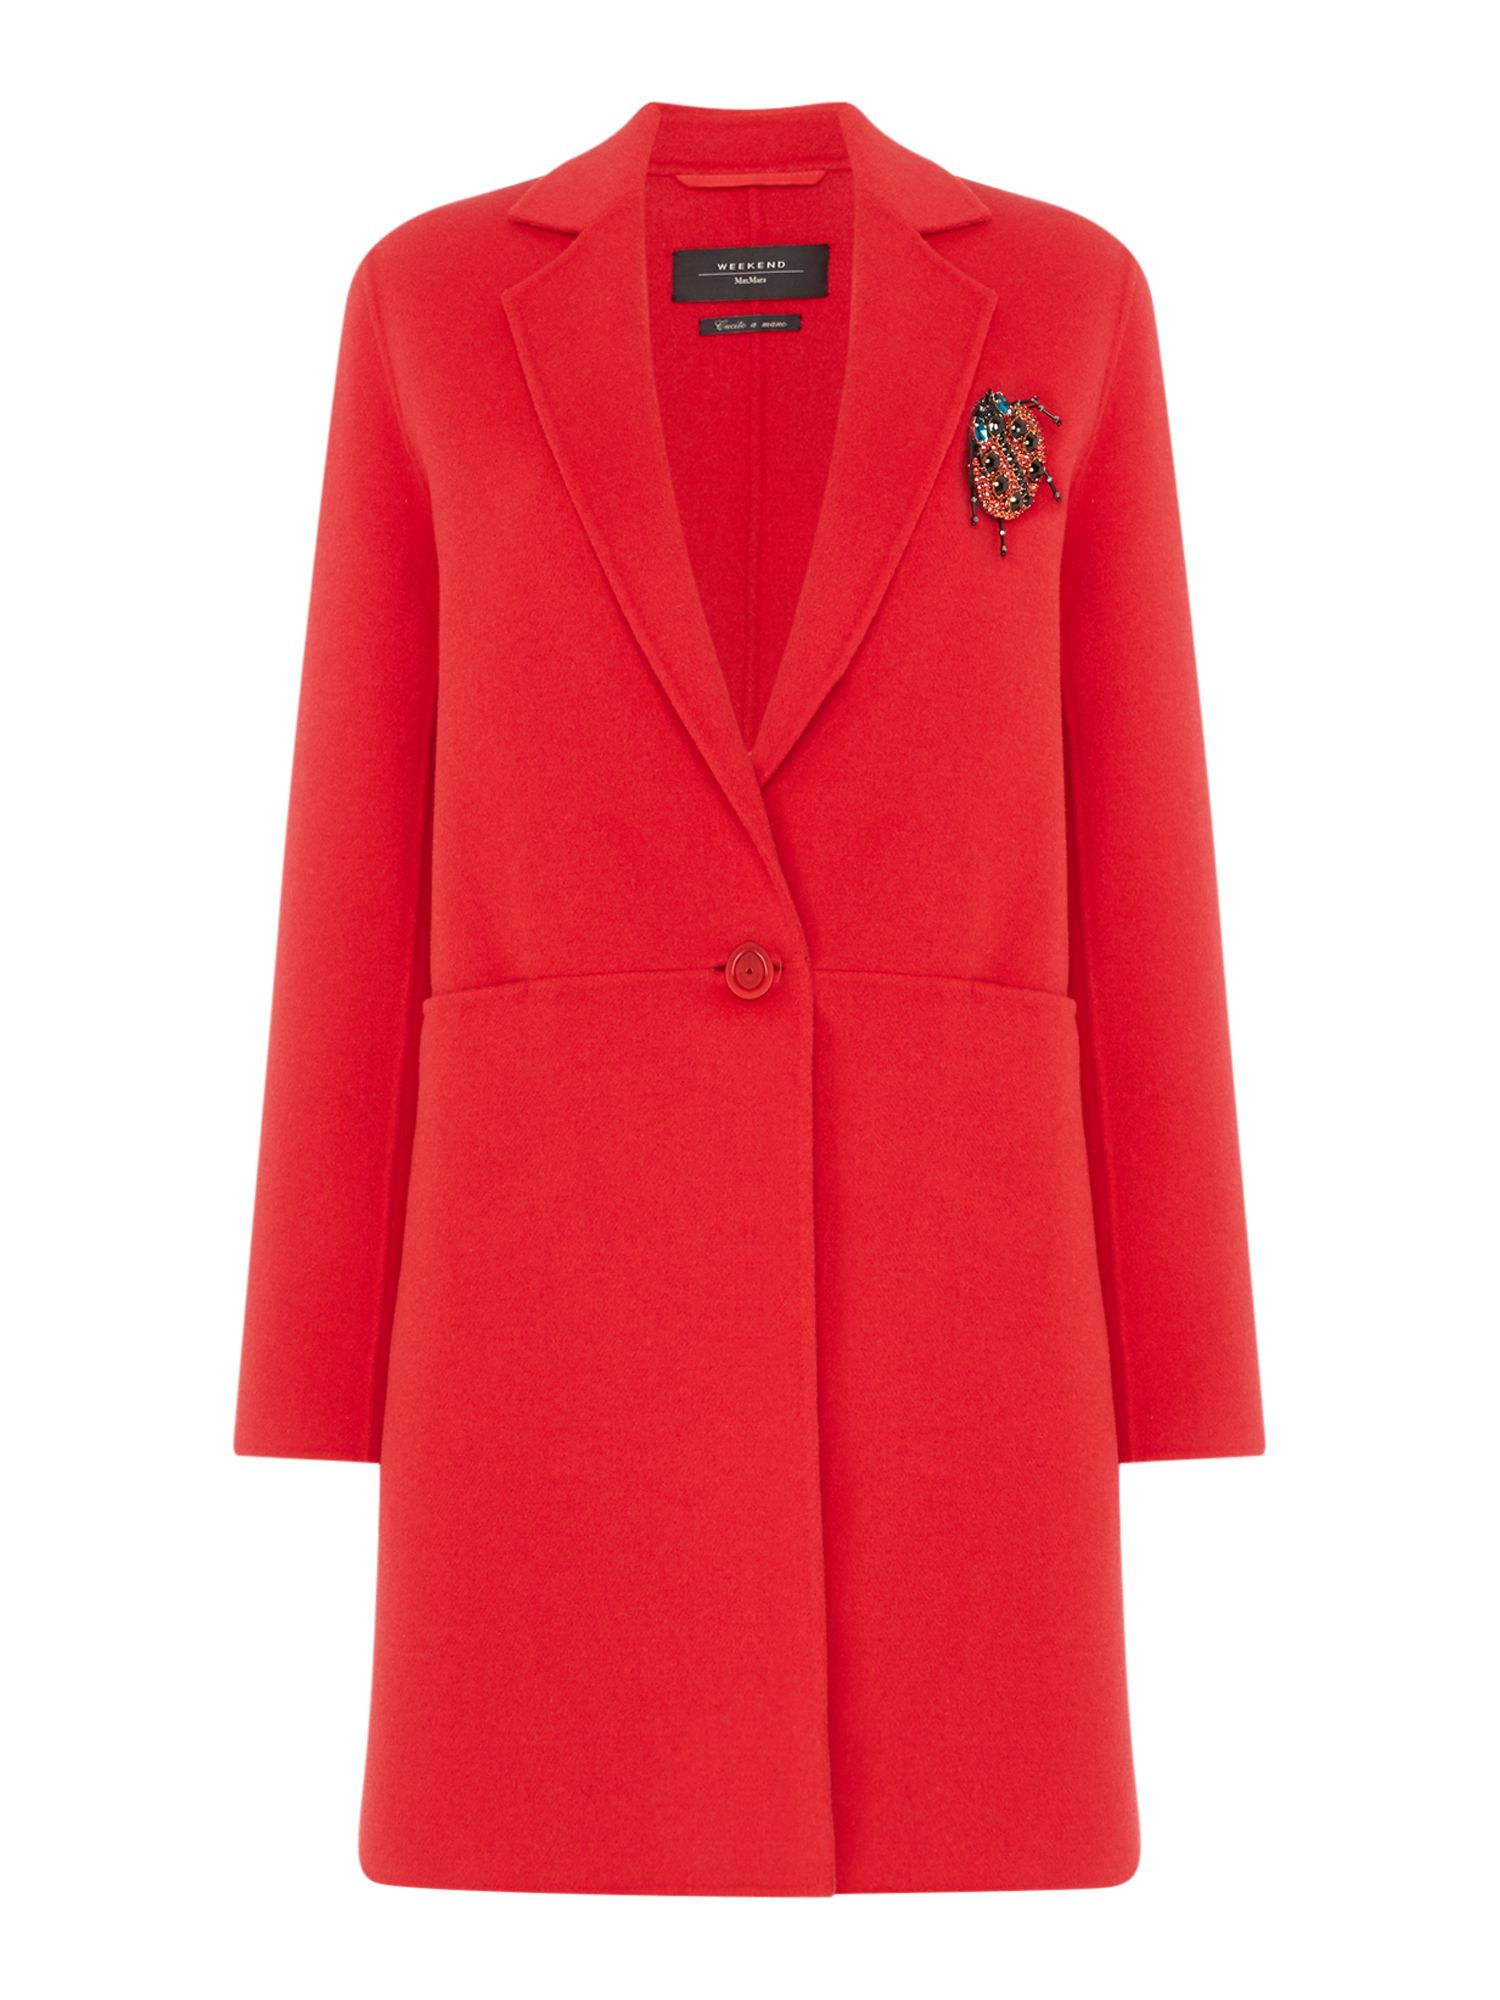 Max Mara Weekend Timoteo Red Wool Coat, Red